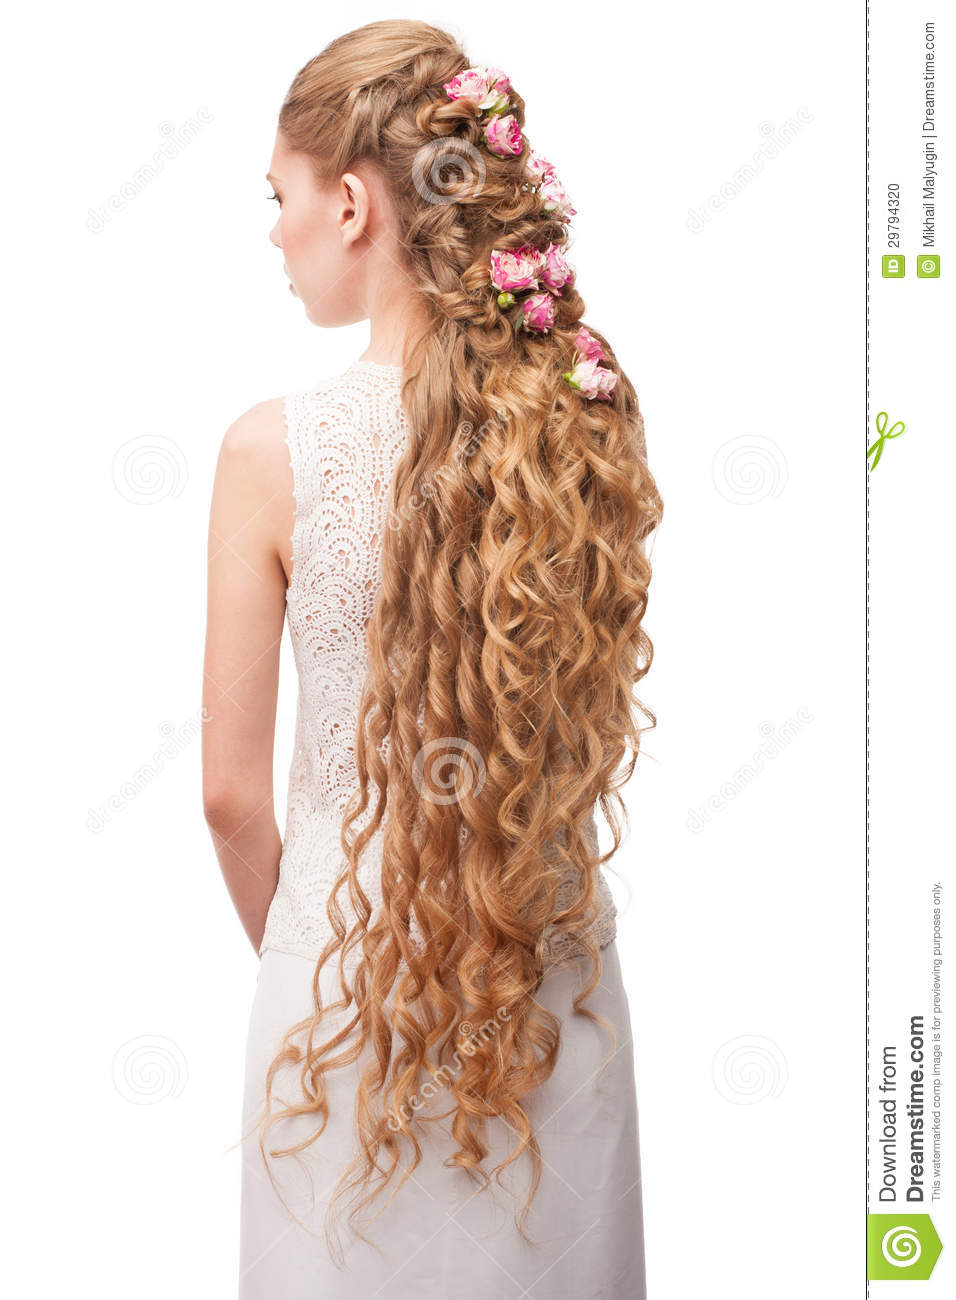 woman with curly long hair stock photo - image: 29794320